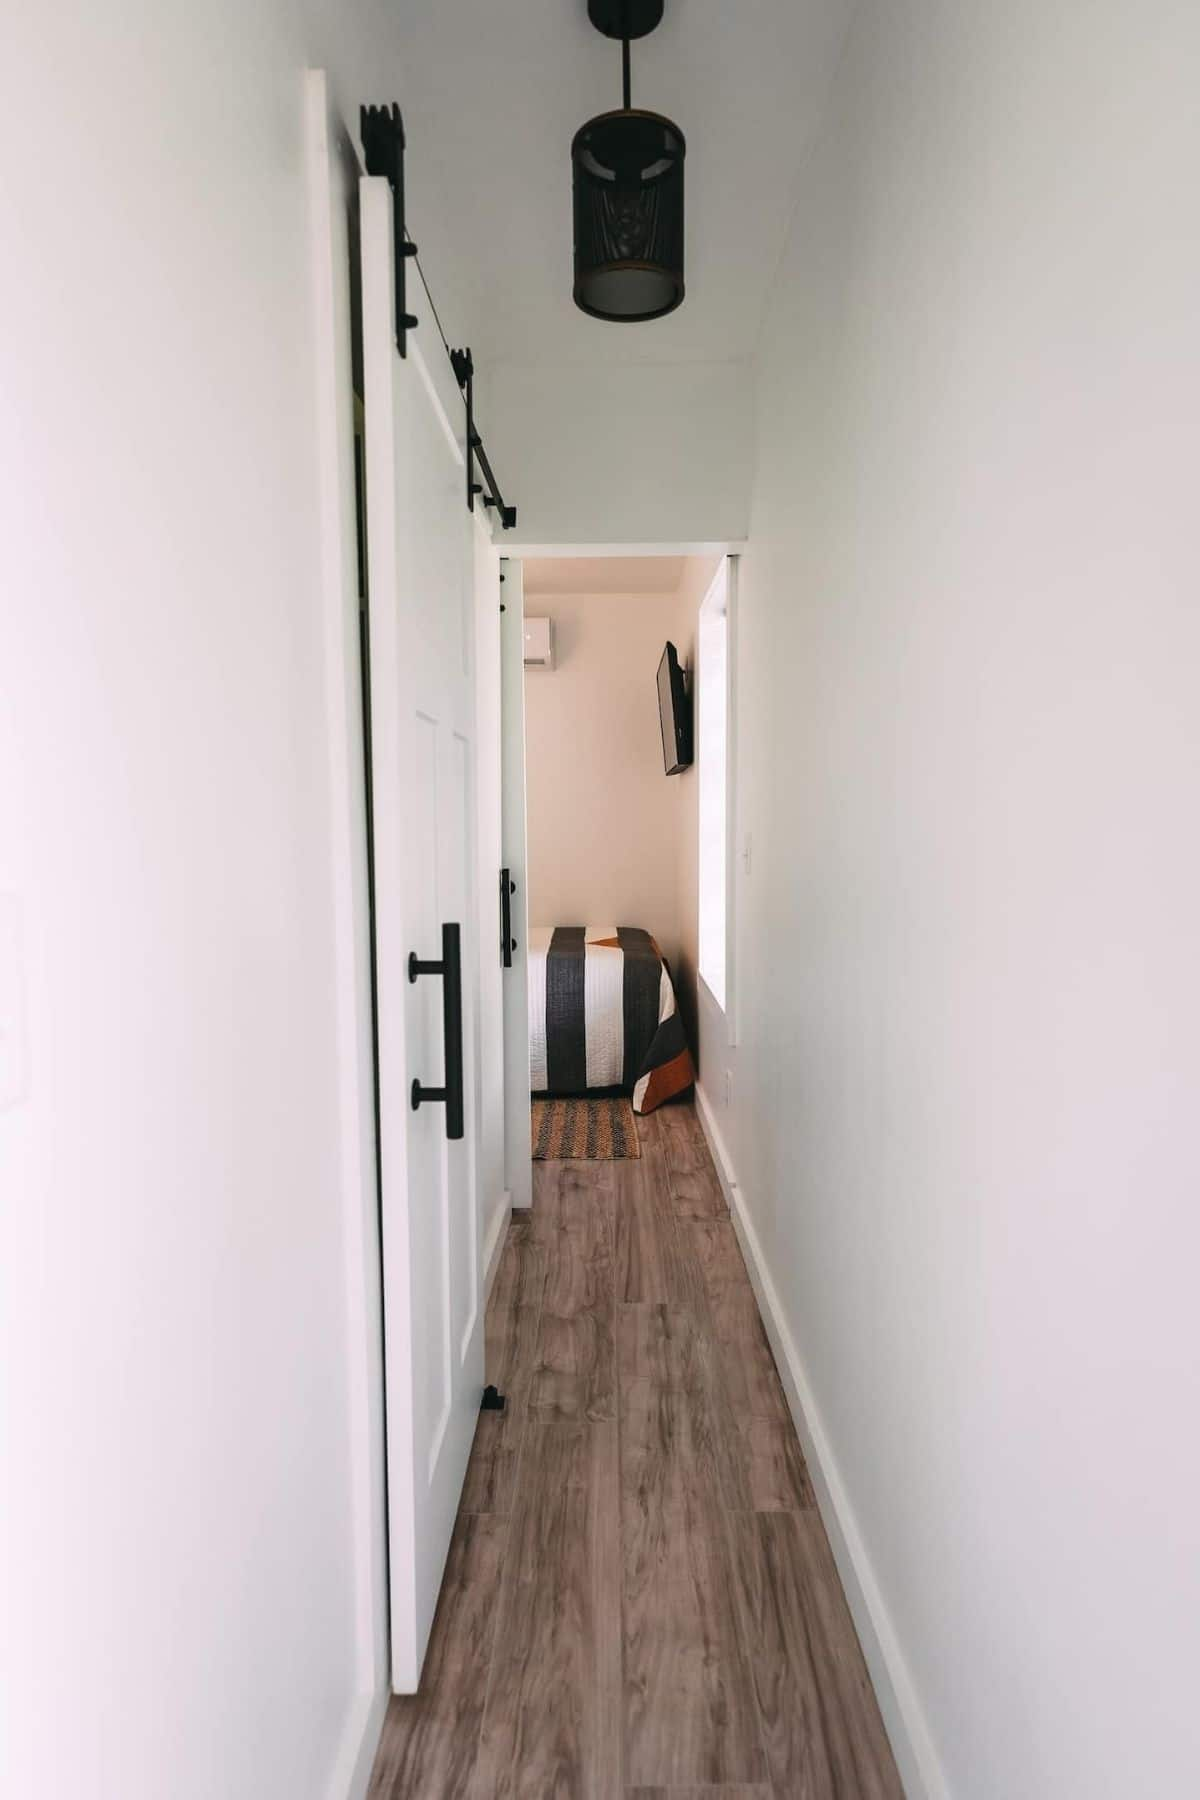 White narrow hallway leading to bedroom with dangling light in center